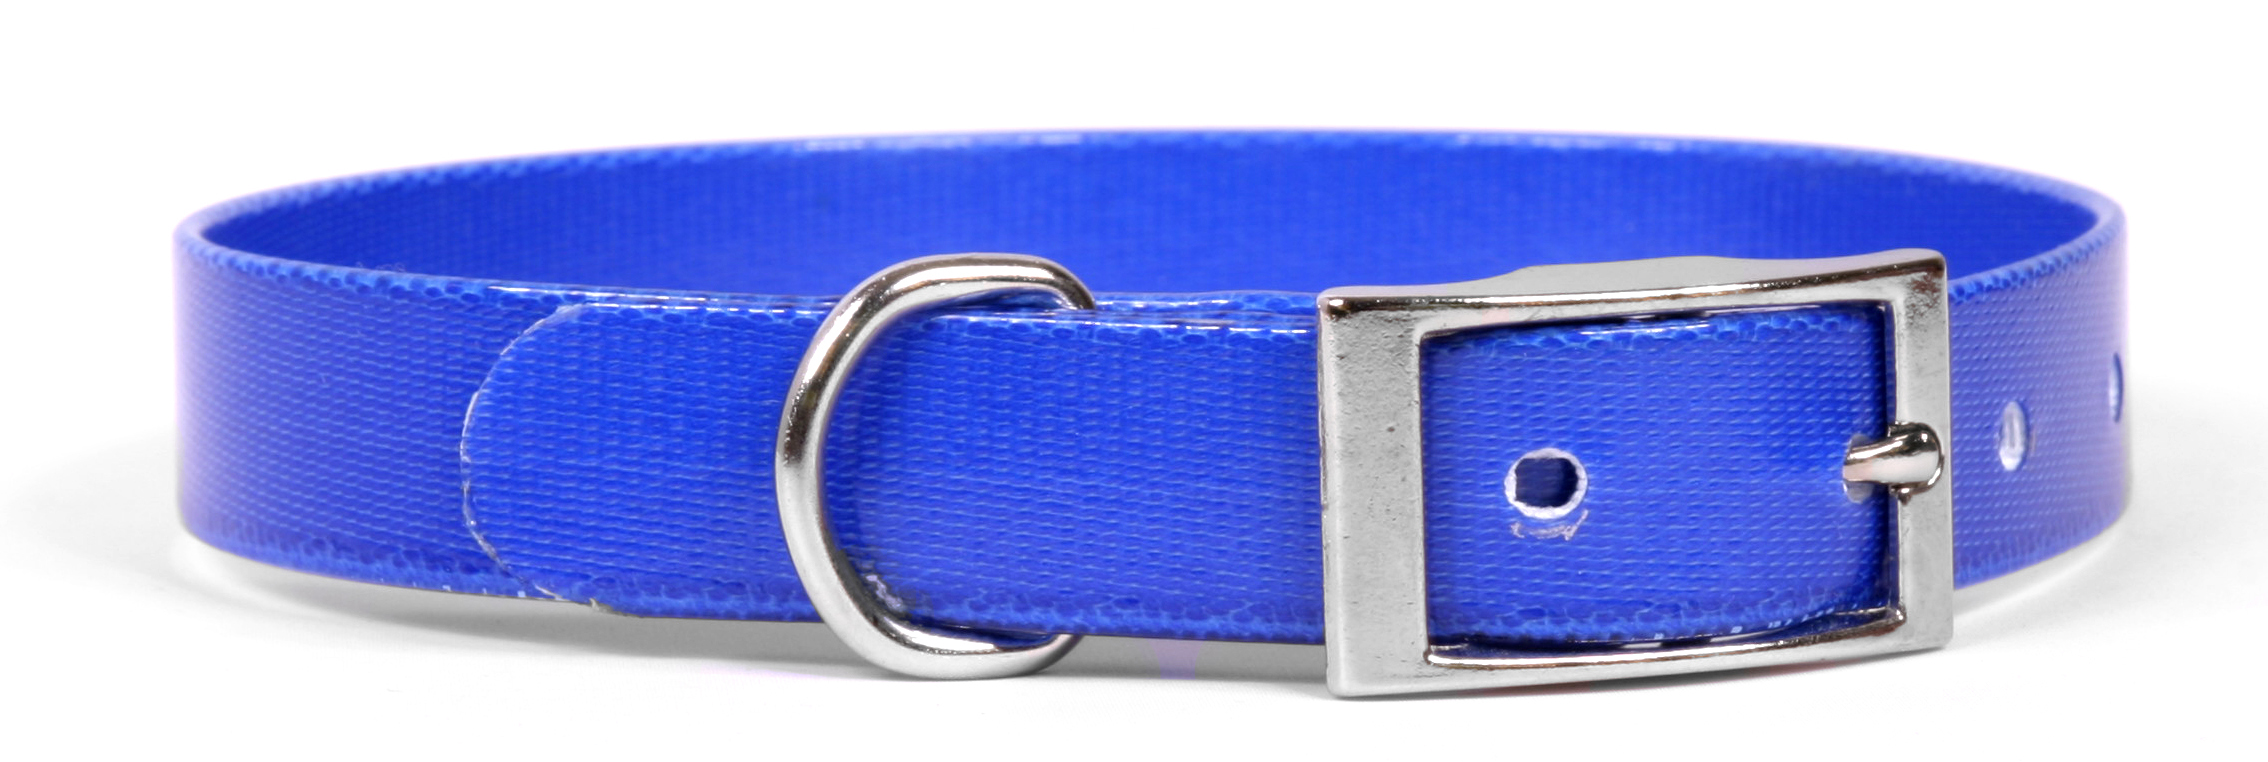 Solid Royal Blue Elements Collar